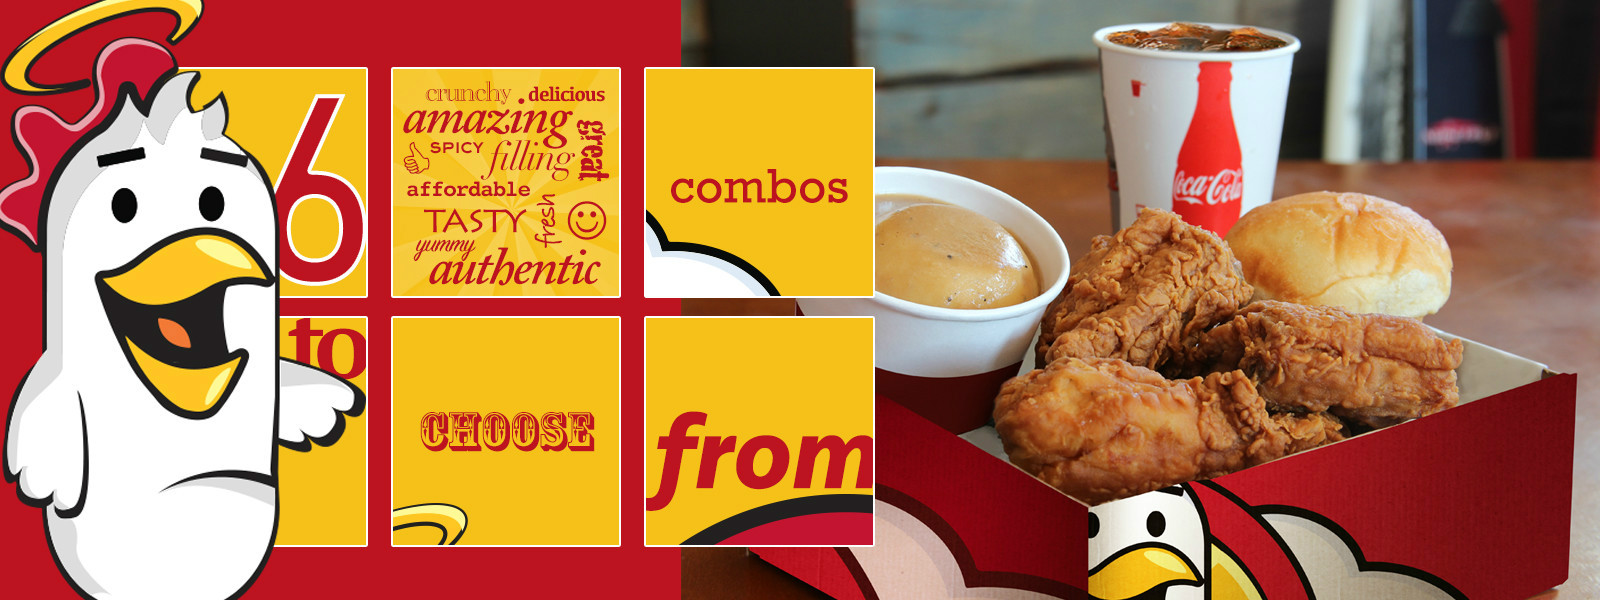 6 Amazing Delicious Combos to Choose From. Heaven Sent Fried Chicken.